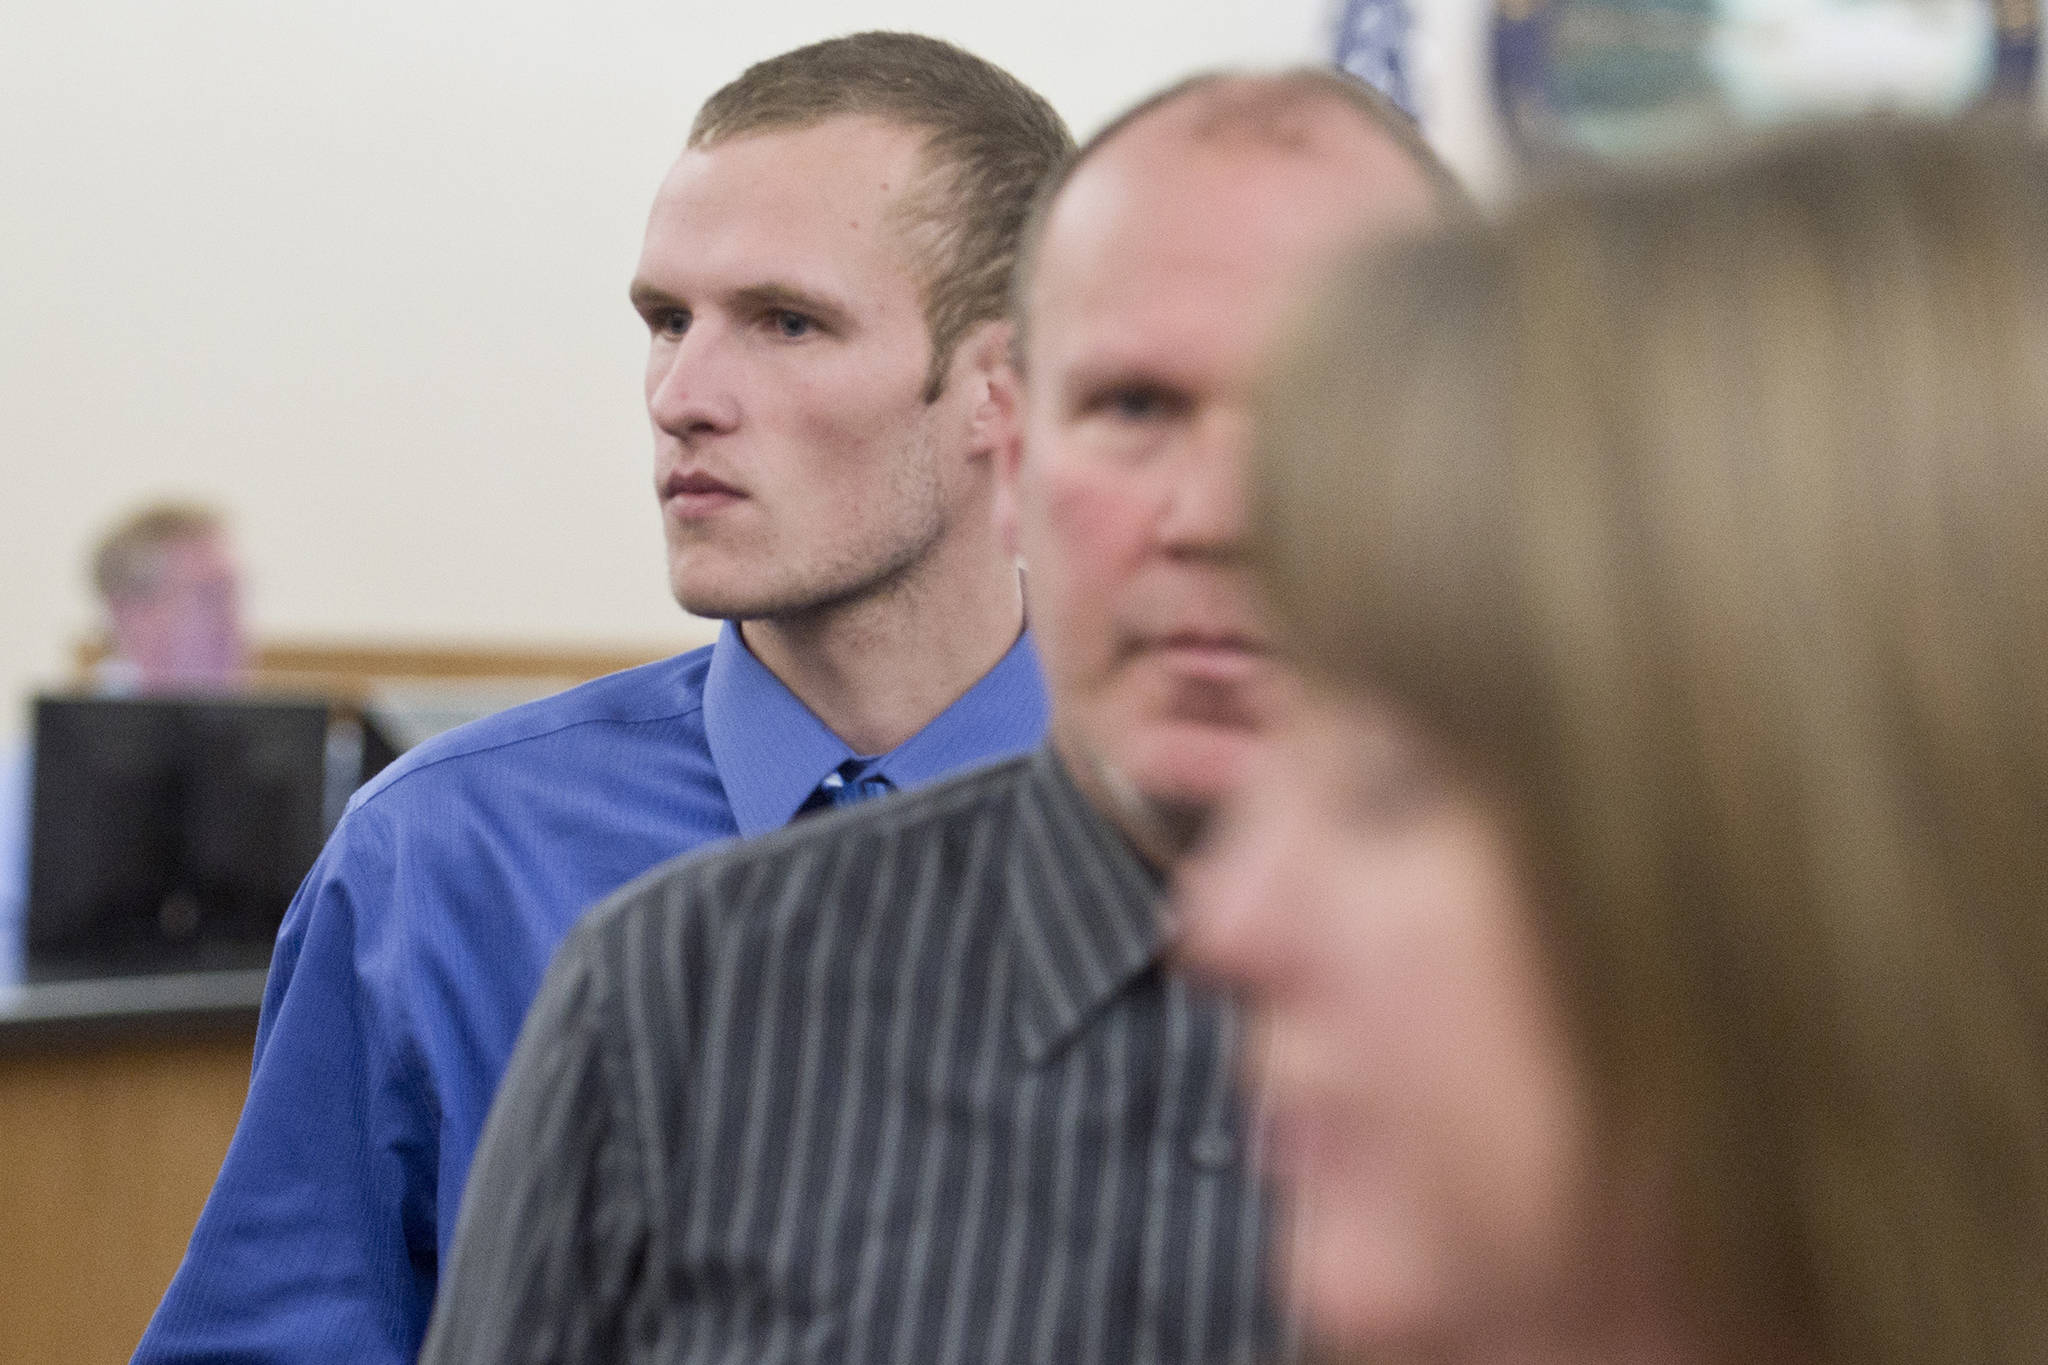 Ty Alexander Grussendorf, 22 at the time, follows his parents out of Juneau Superior Court after a trial date-setting hearing on Wednesday, March 1, 2017. (Michael Penn | Juneau Empire File)